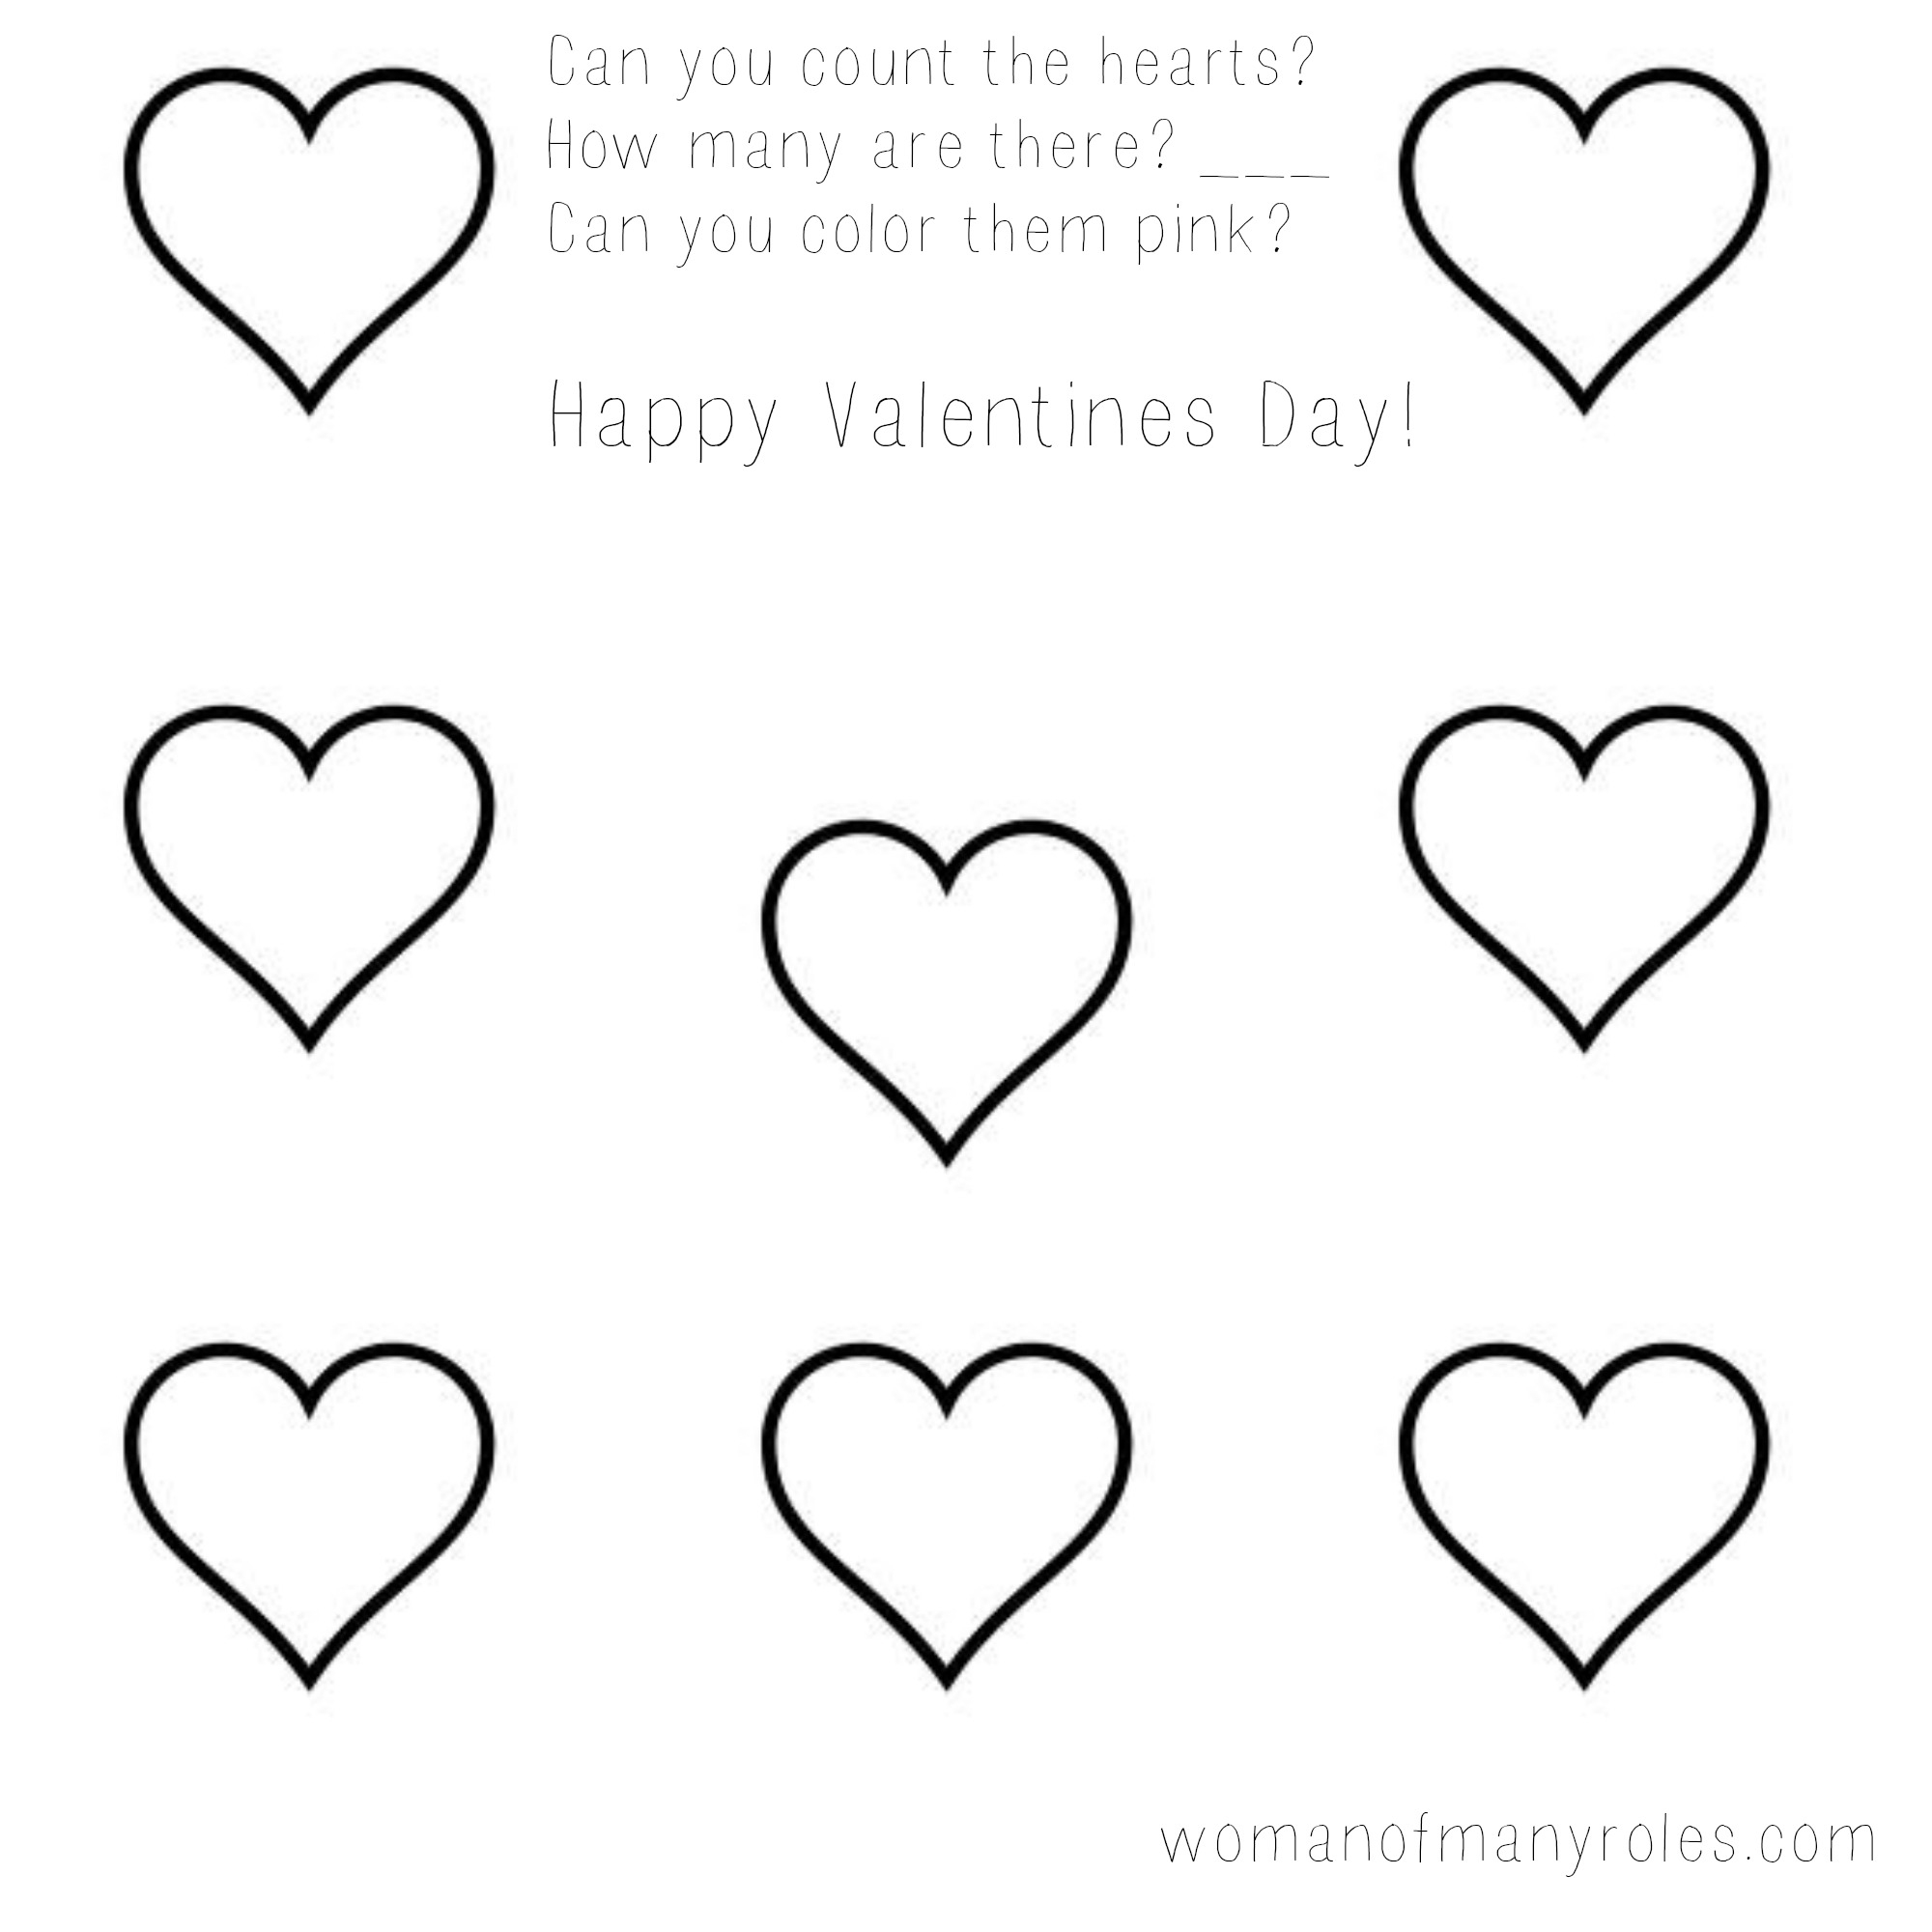 Heart Counting Printable Preschool Worksheet : Woman Of Many Roles - Free Printable Preschool Valentine Worksheets